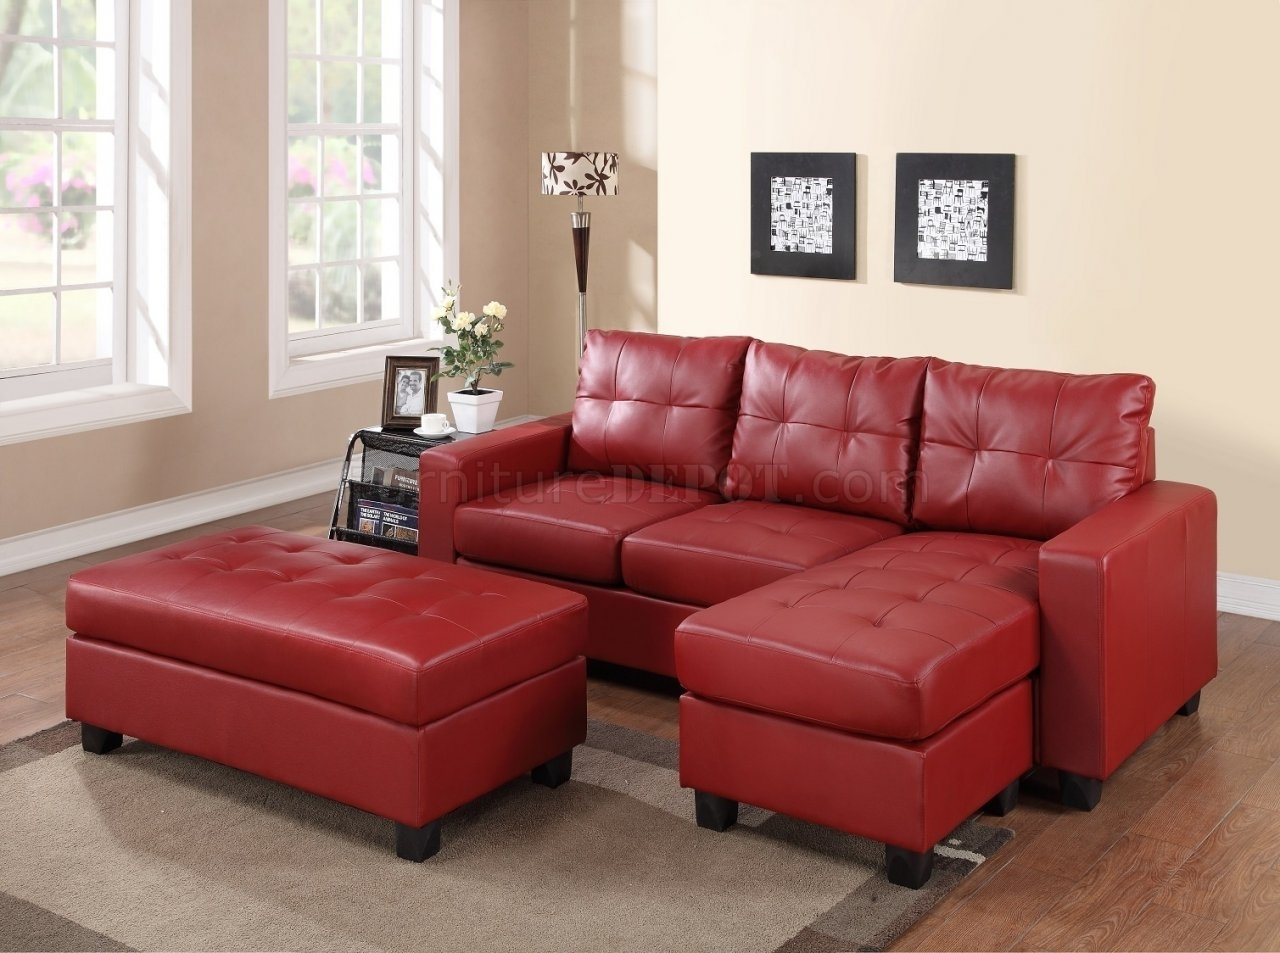 2511 Sectional Sofa Set In Red Bonded Leather Match Pu Inside Small Red Leather Sectional Sofas (Photo 3 of 15)